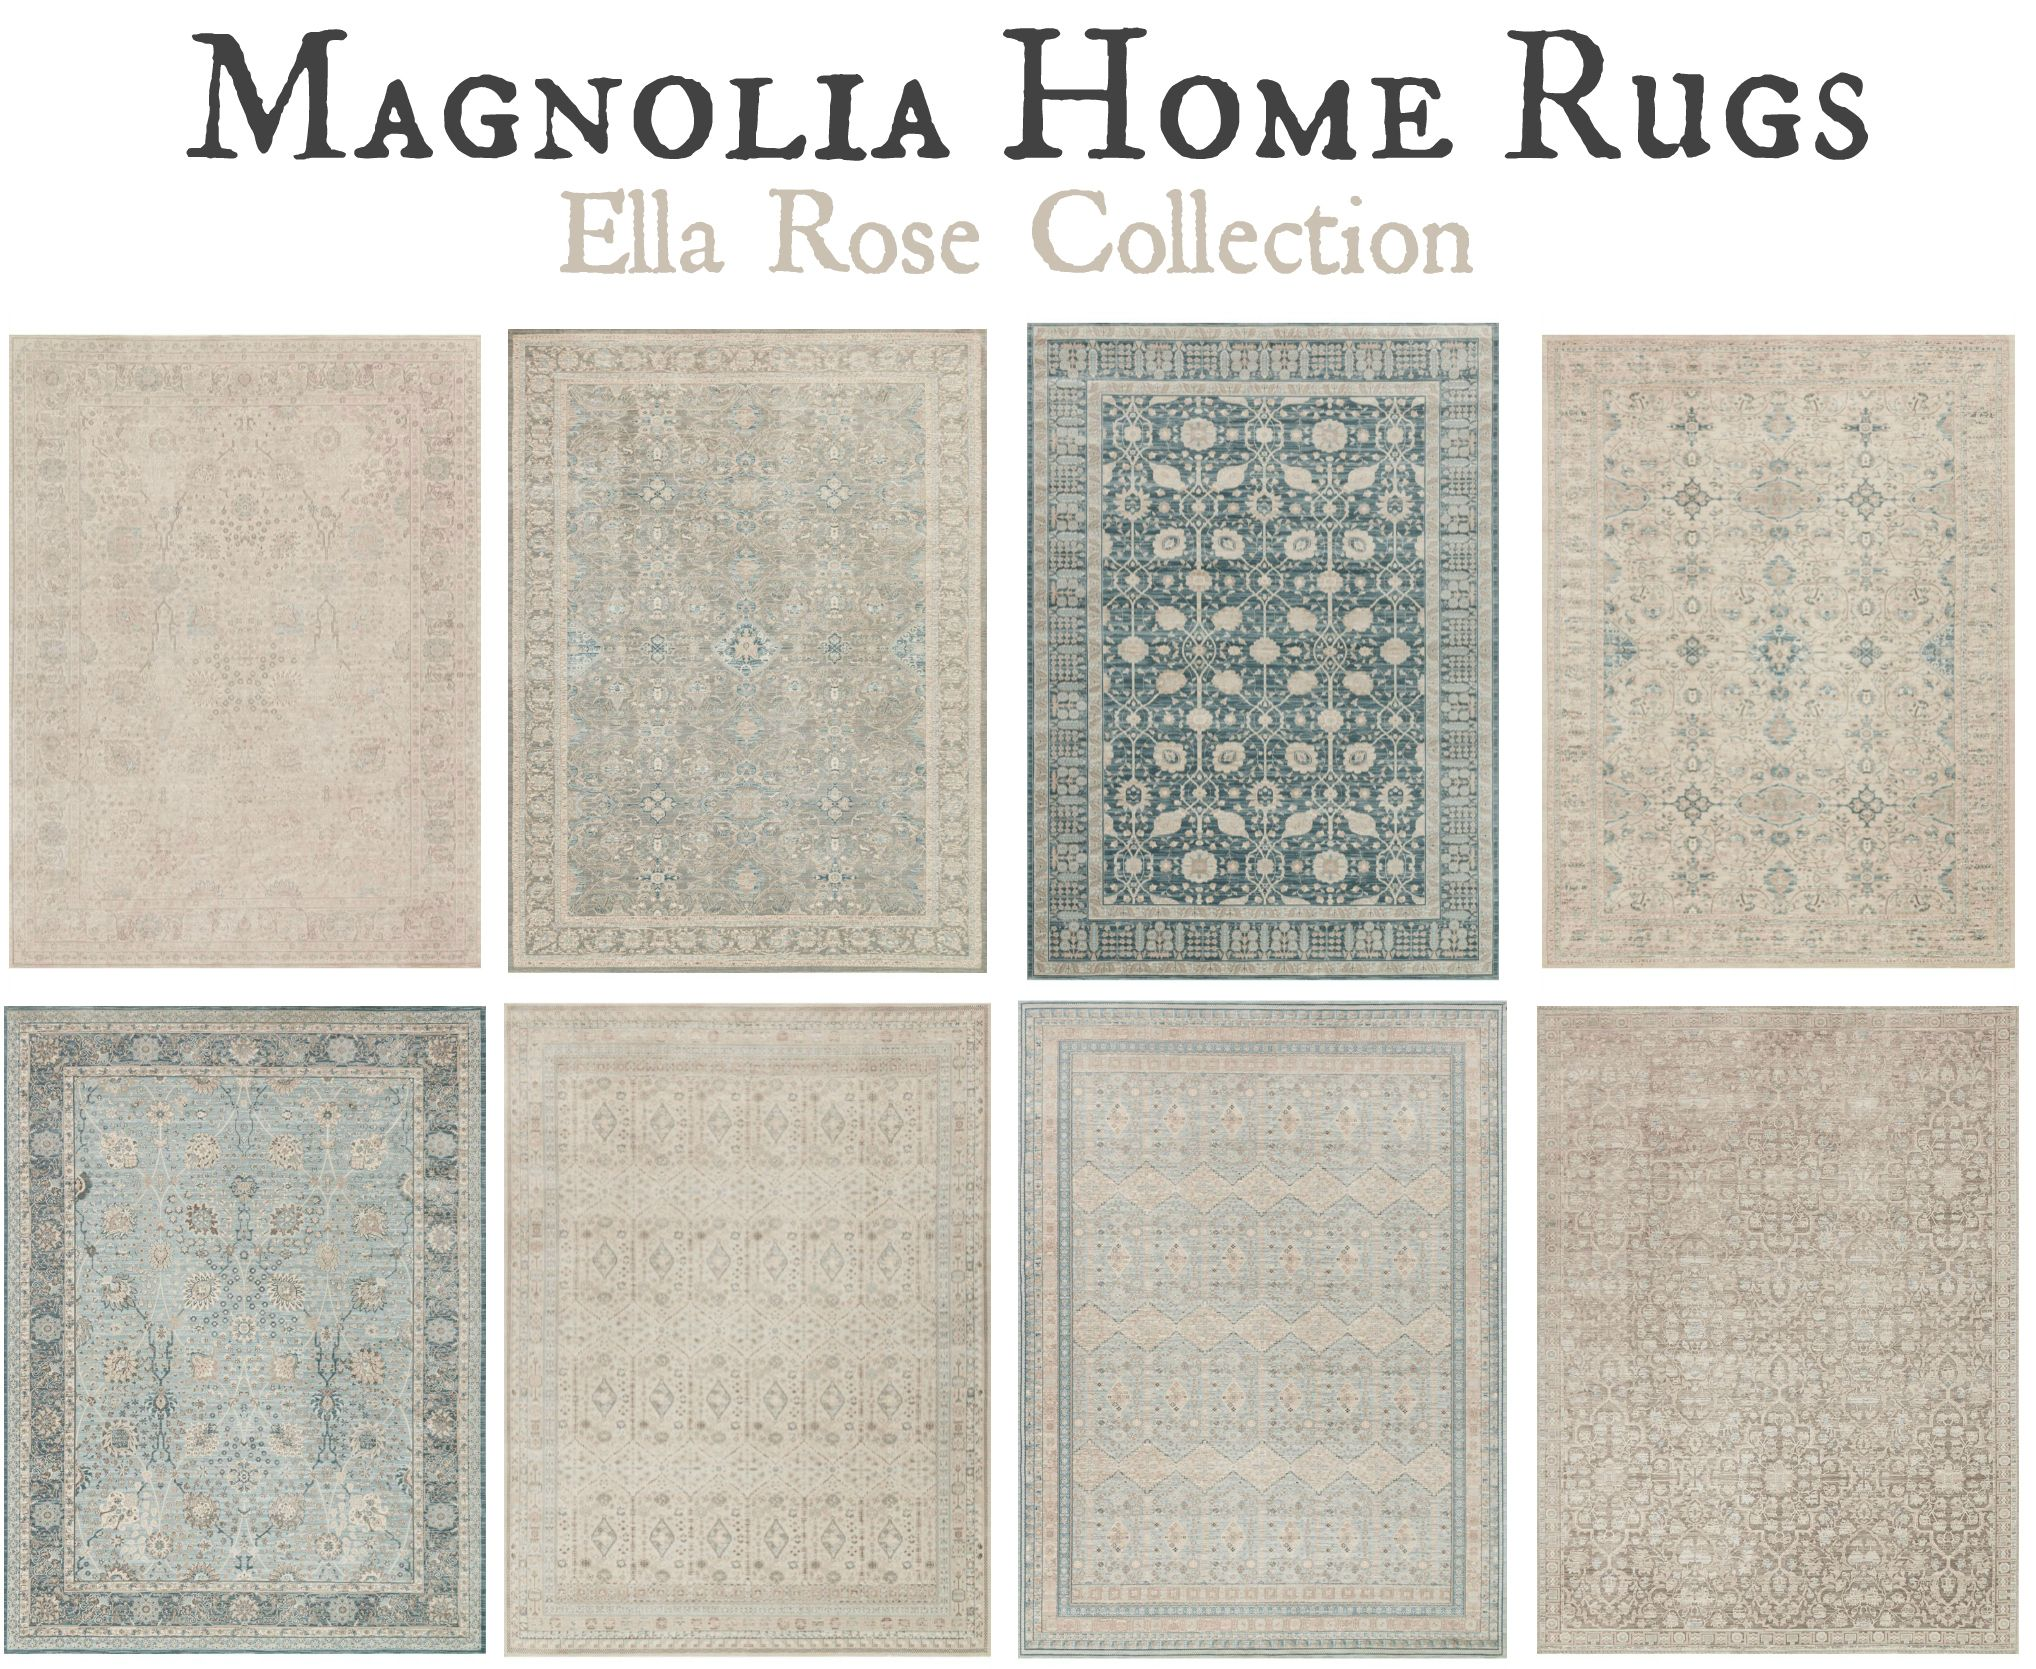 Joanna Gaines New Rug Line Is Here I Love Her Magnolia Home Rugs And Cant Wait To See Use Them In Fixer Upper Designs